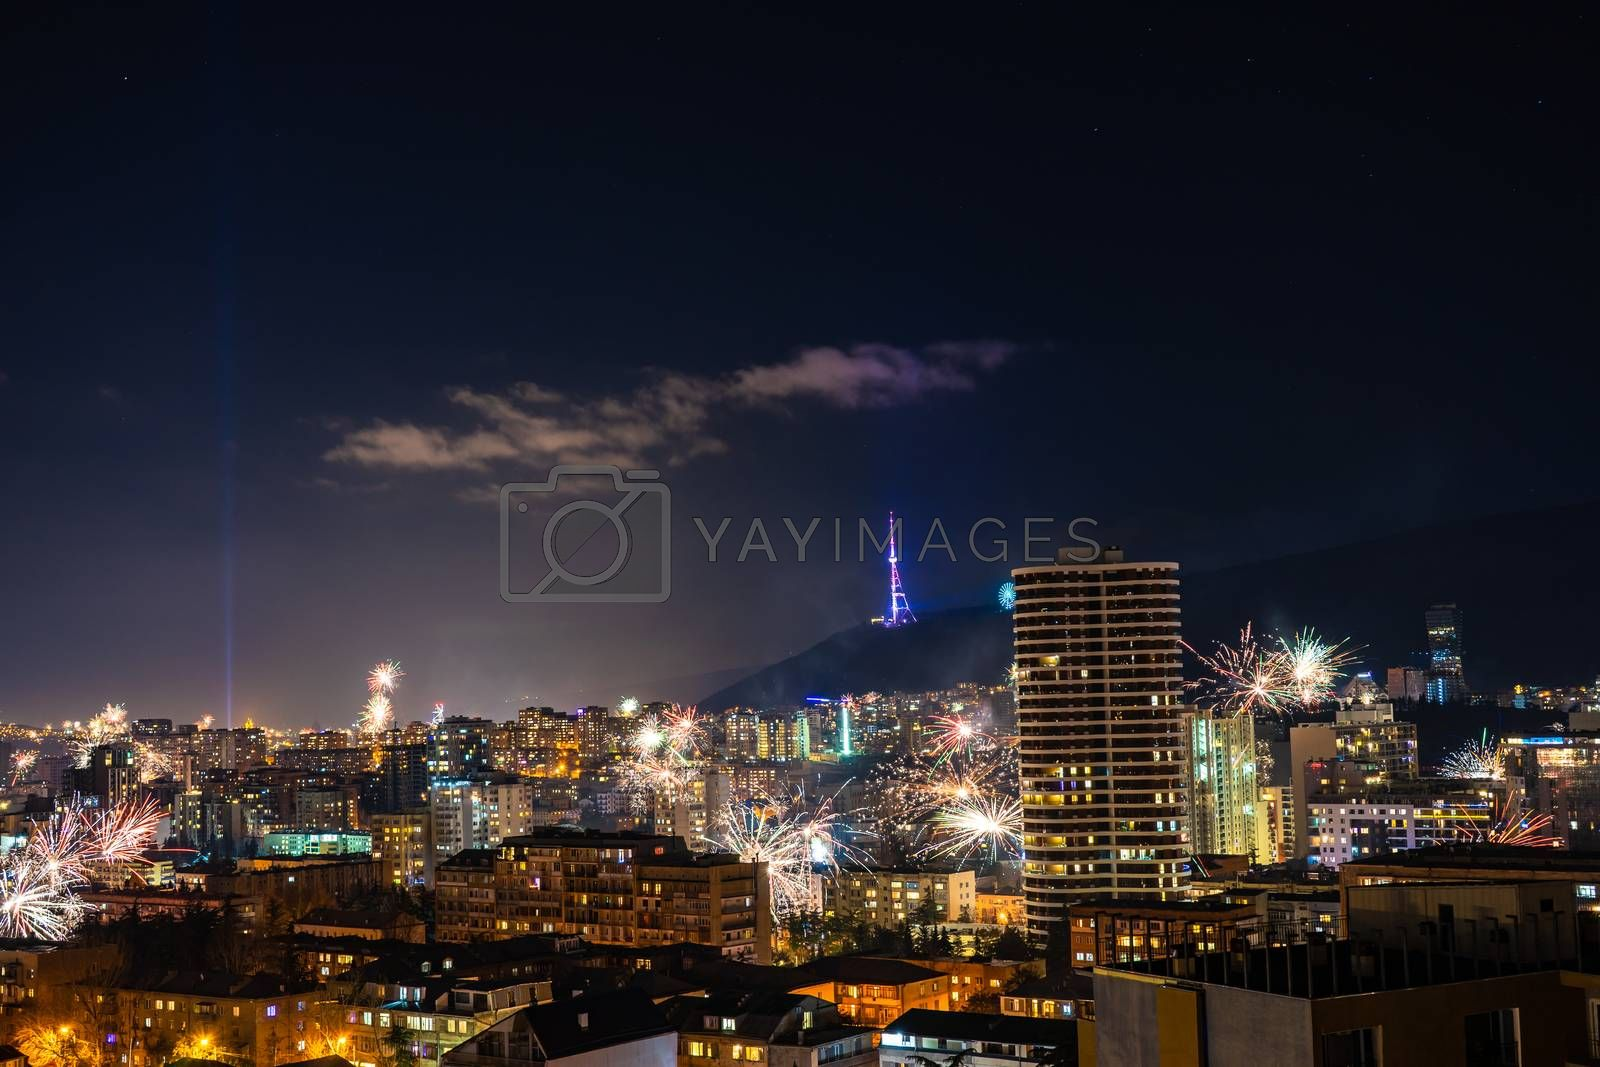 Georgia - Tbilisi. Meeting New 2020 year with fireworks over the central part of Tbilisi, capita city of Republic of Georgia in Caucasus region. 31.12.1019-01.01.2020